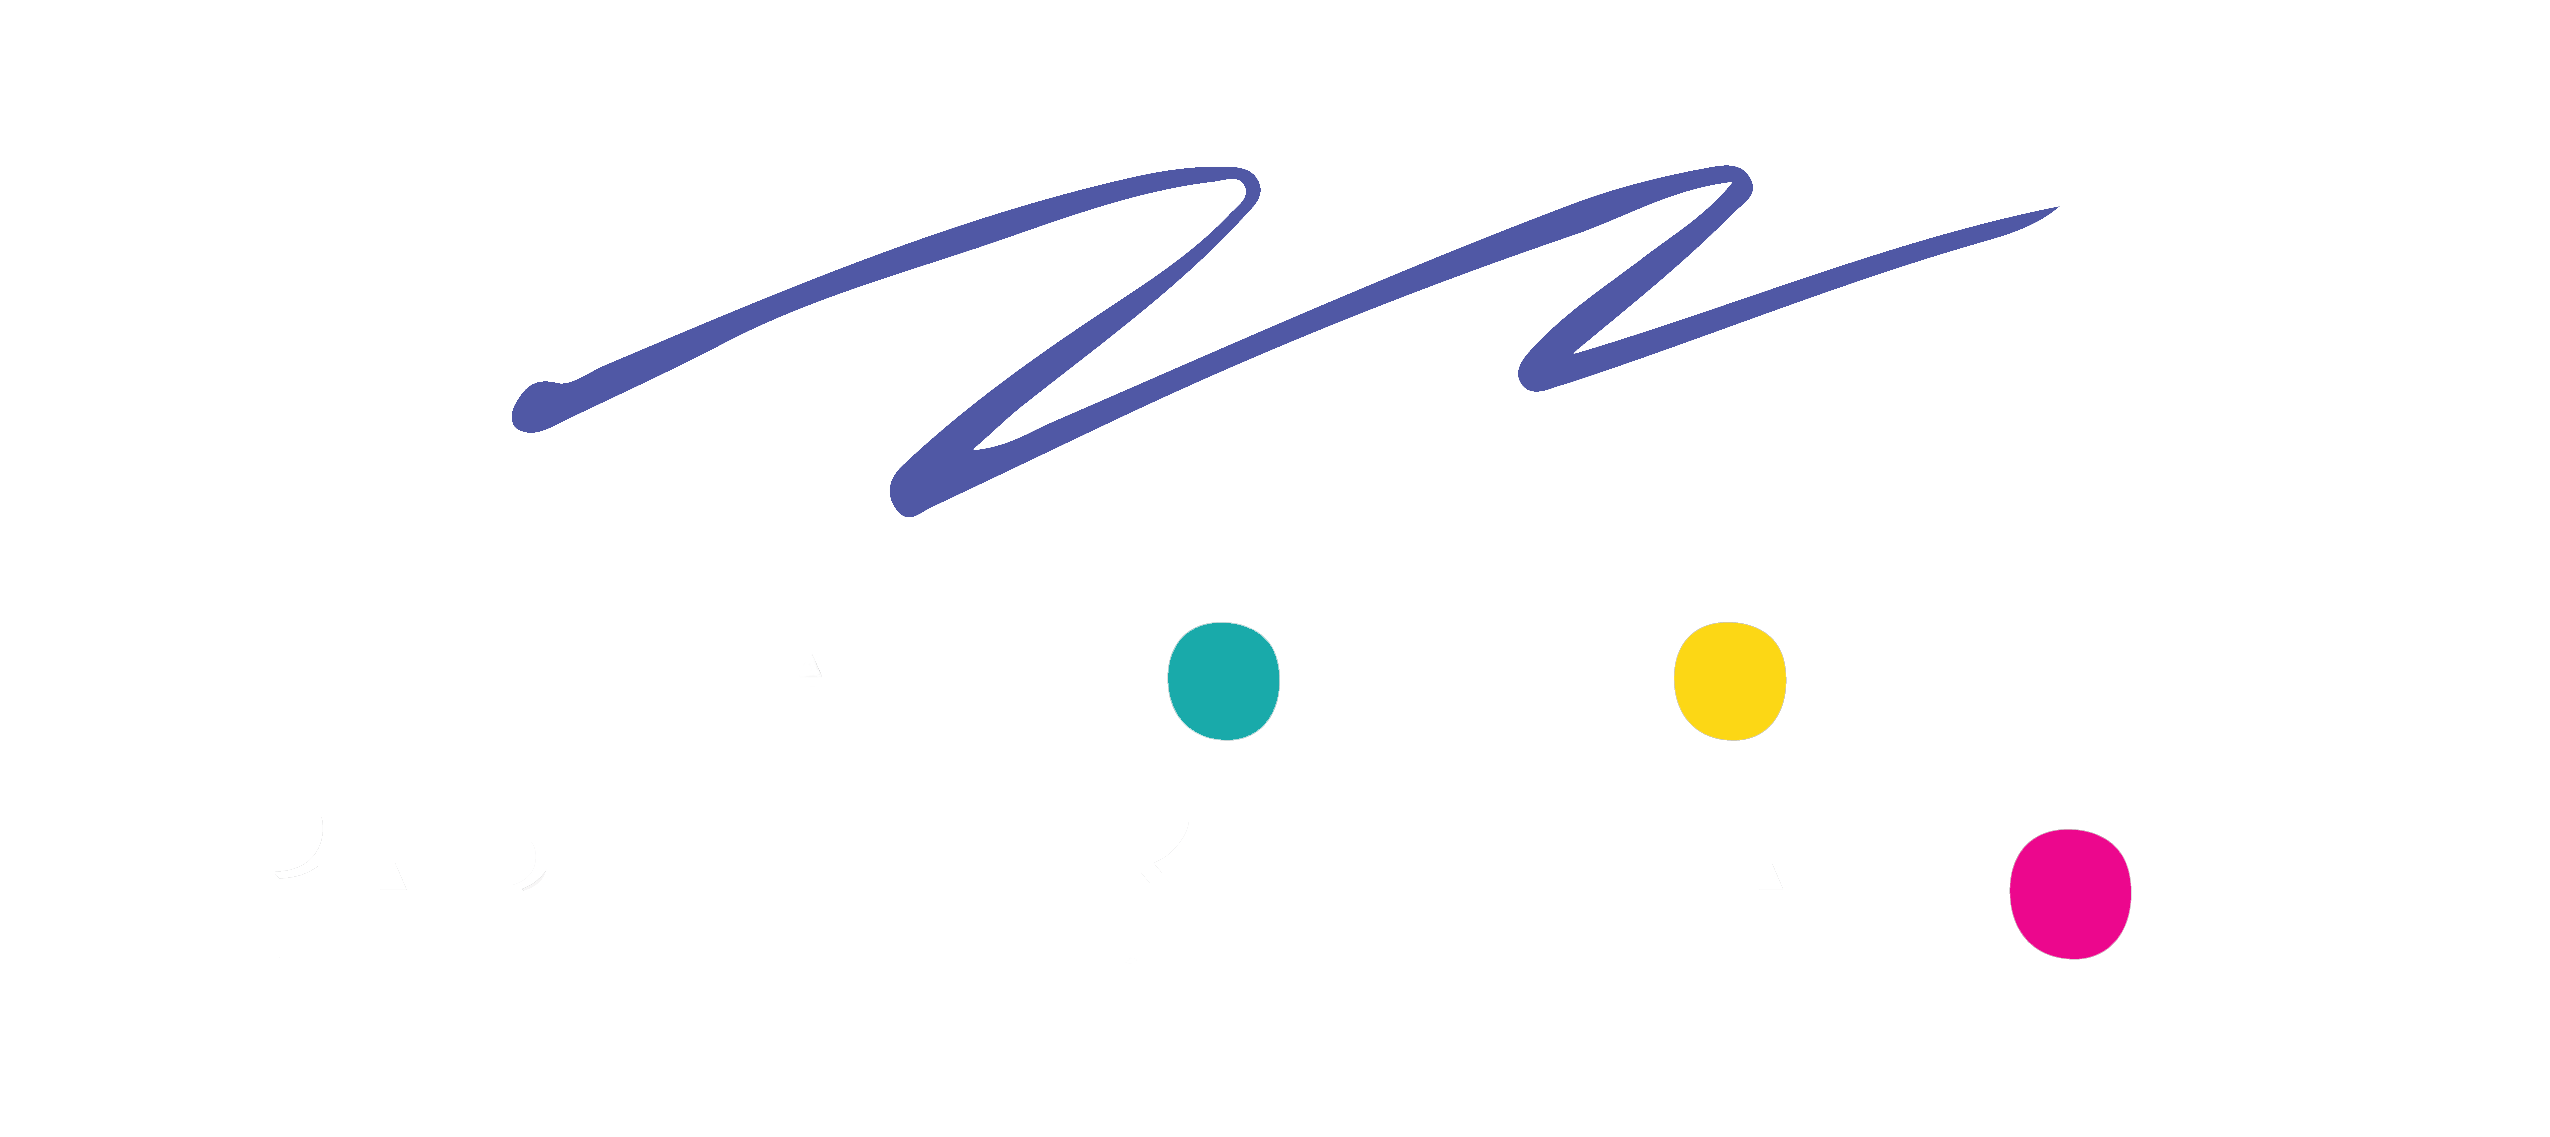 Williamson County Parks and Recreation logo white